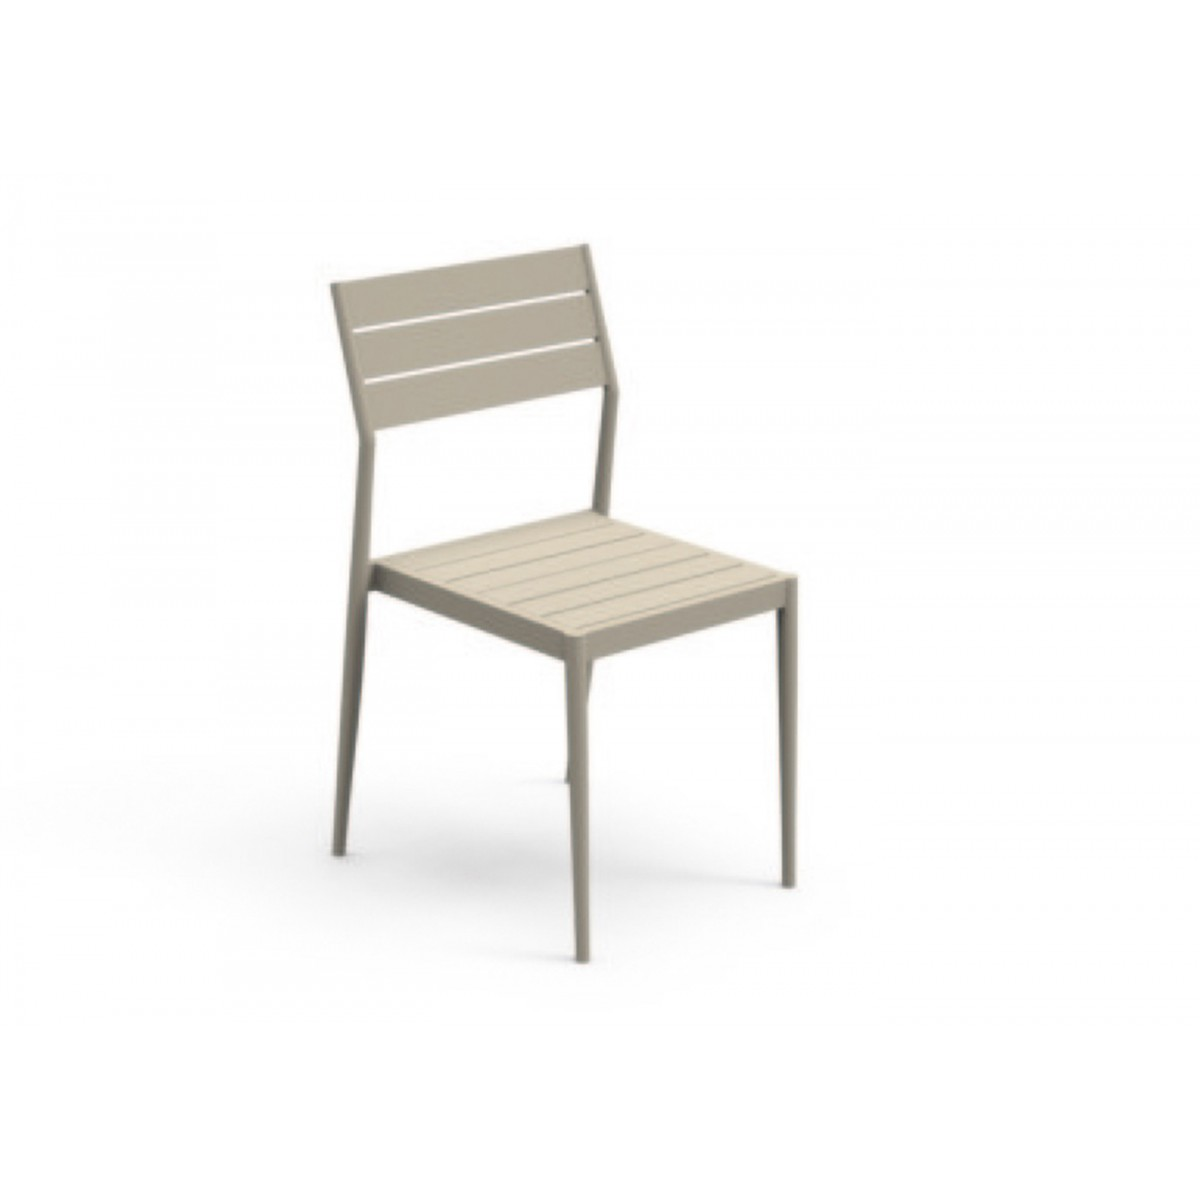 Chaise de repas de qualit blanc ou taupe elite par talenti for Chaise de table design